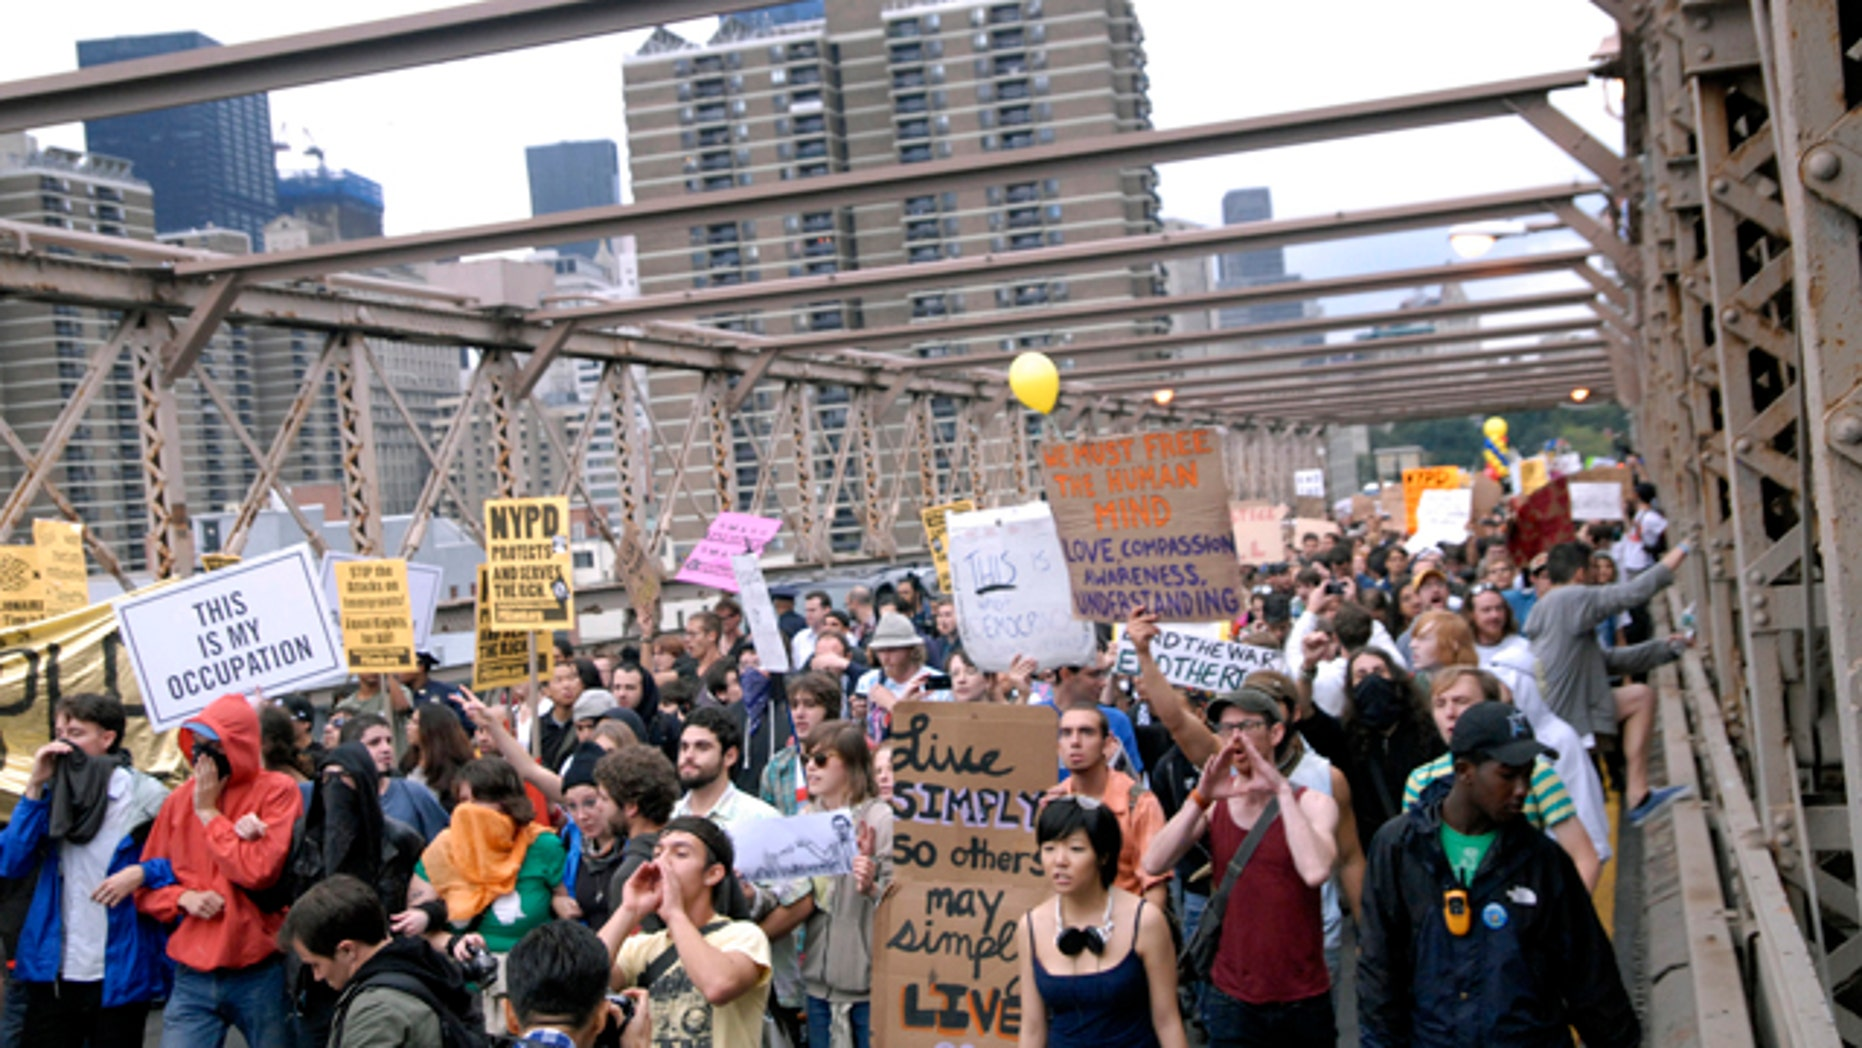 Oct. 1: Protesters walk onto New York's Brooklyn Bridge before police began making arrests during Saturday's march by Occupy Wall Street.